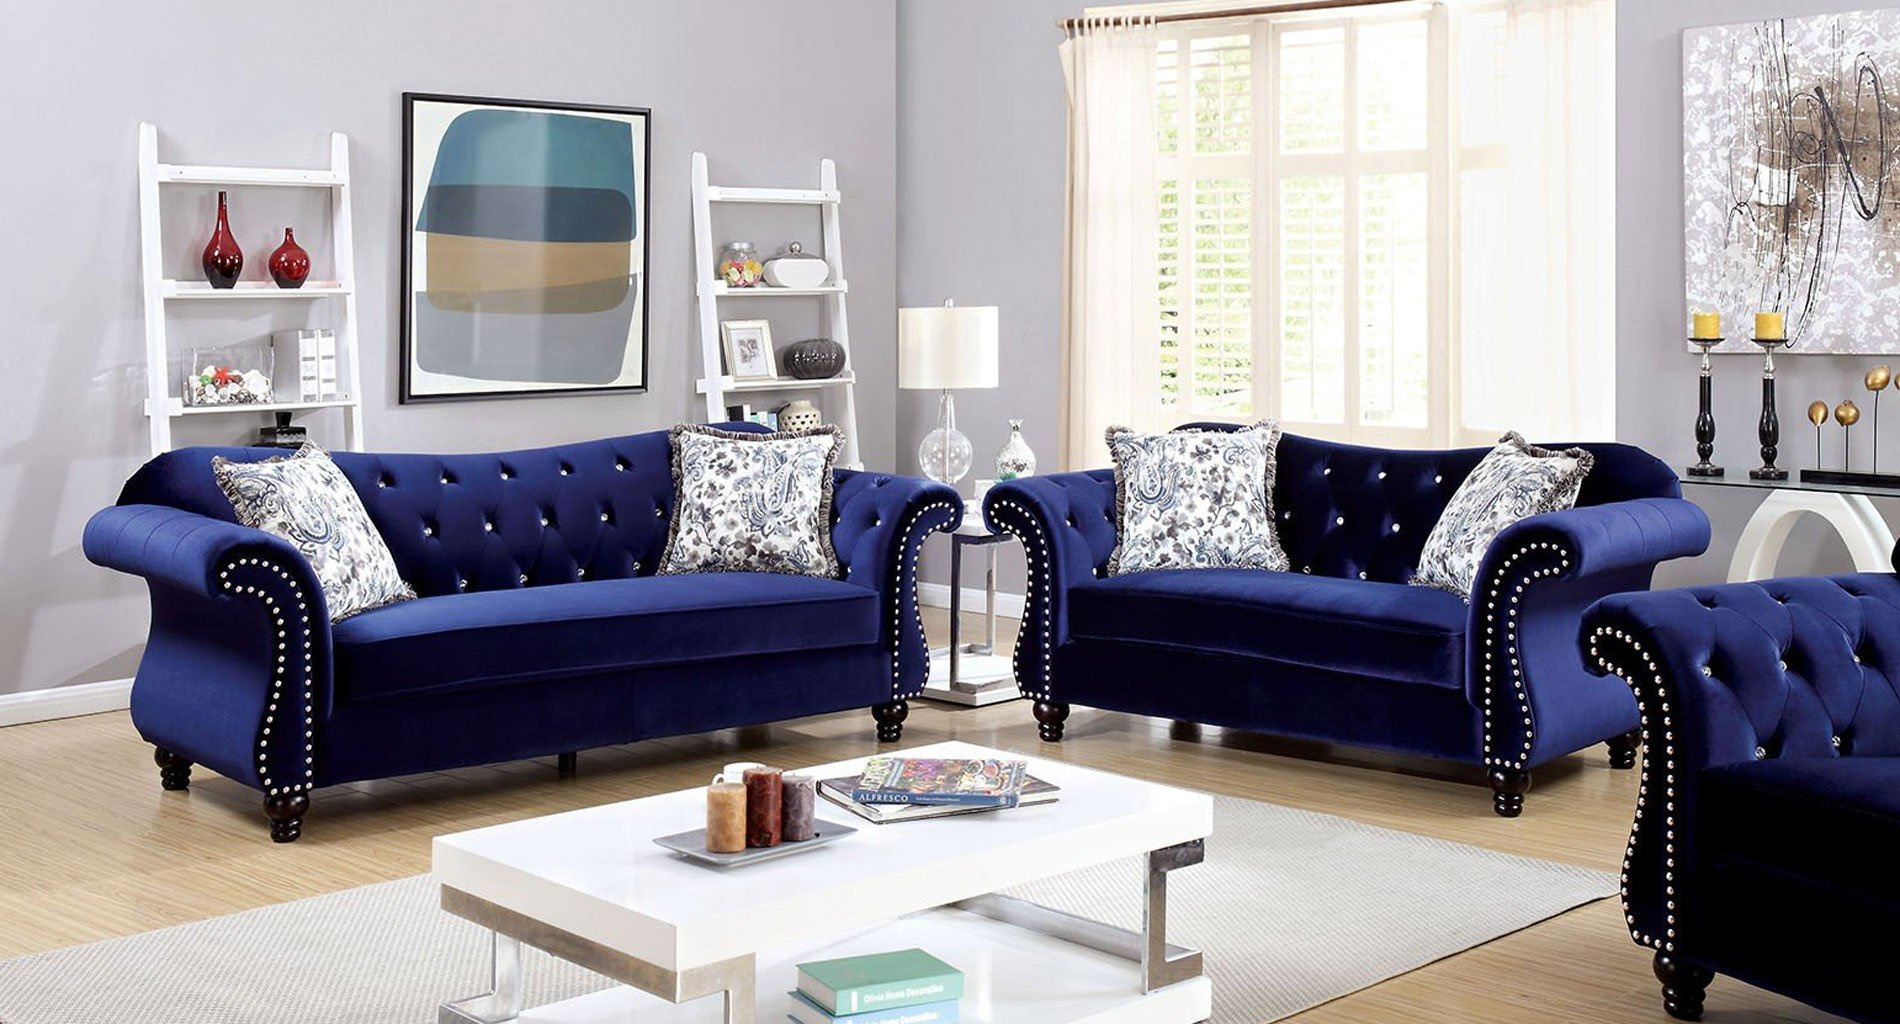 Living Room Furniture: Jolanda Living Room Set (Blue)